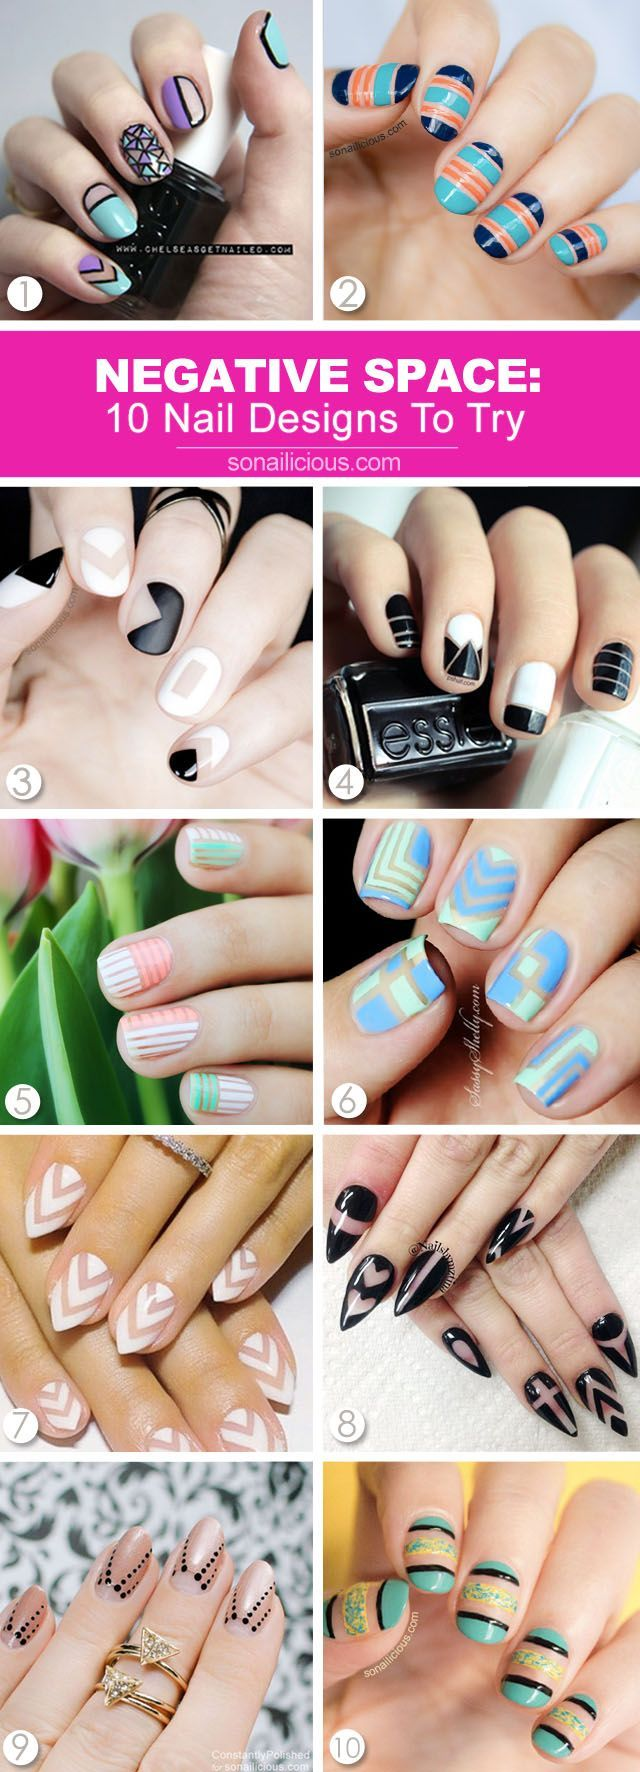 10 Negative Space Nail Designs Anyone Can Pull Off Negative Space